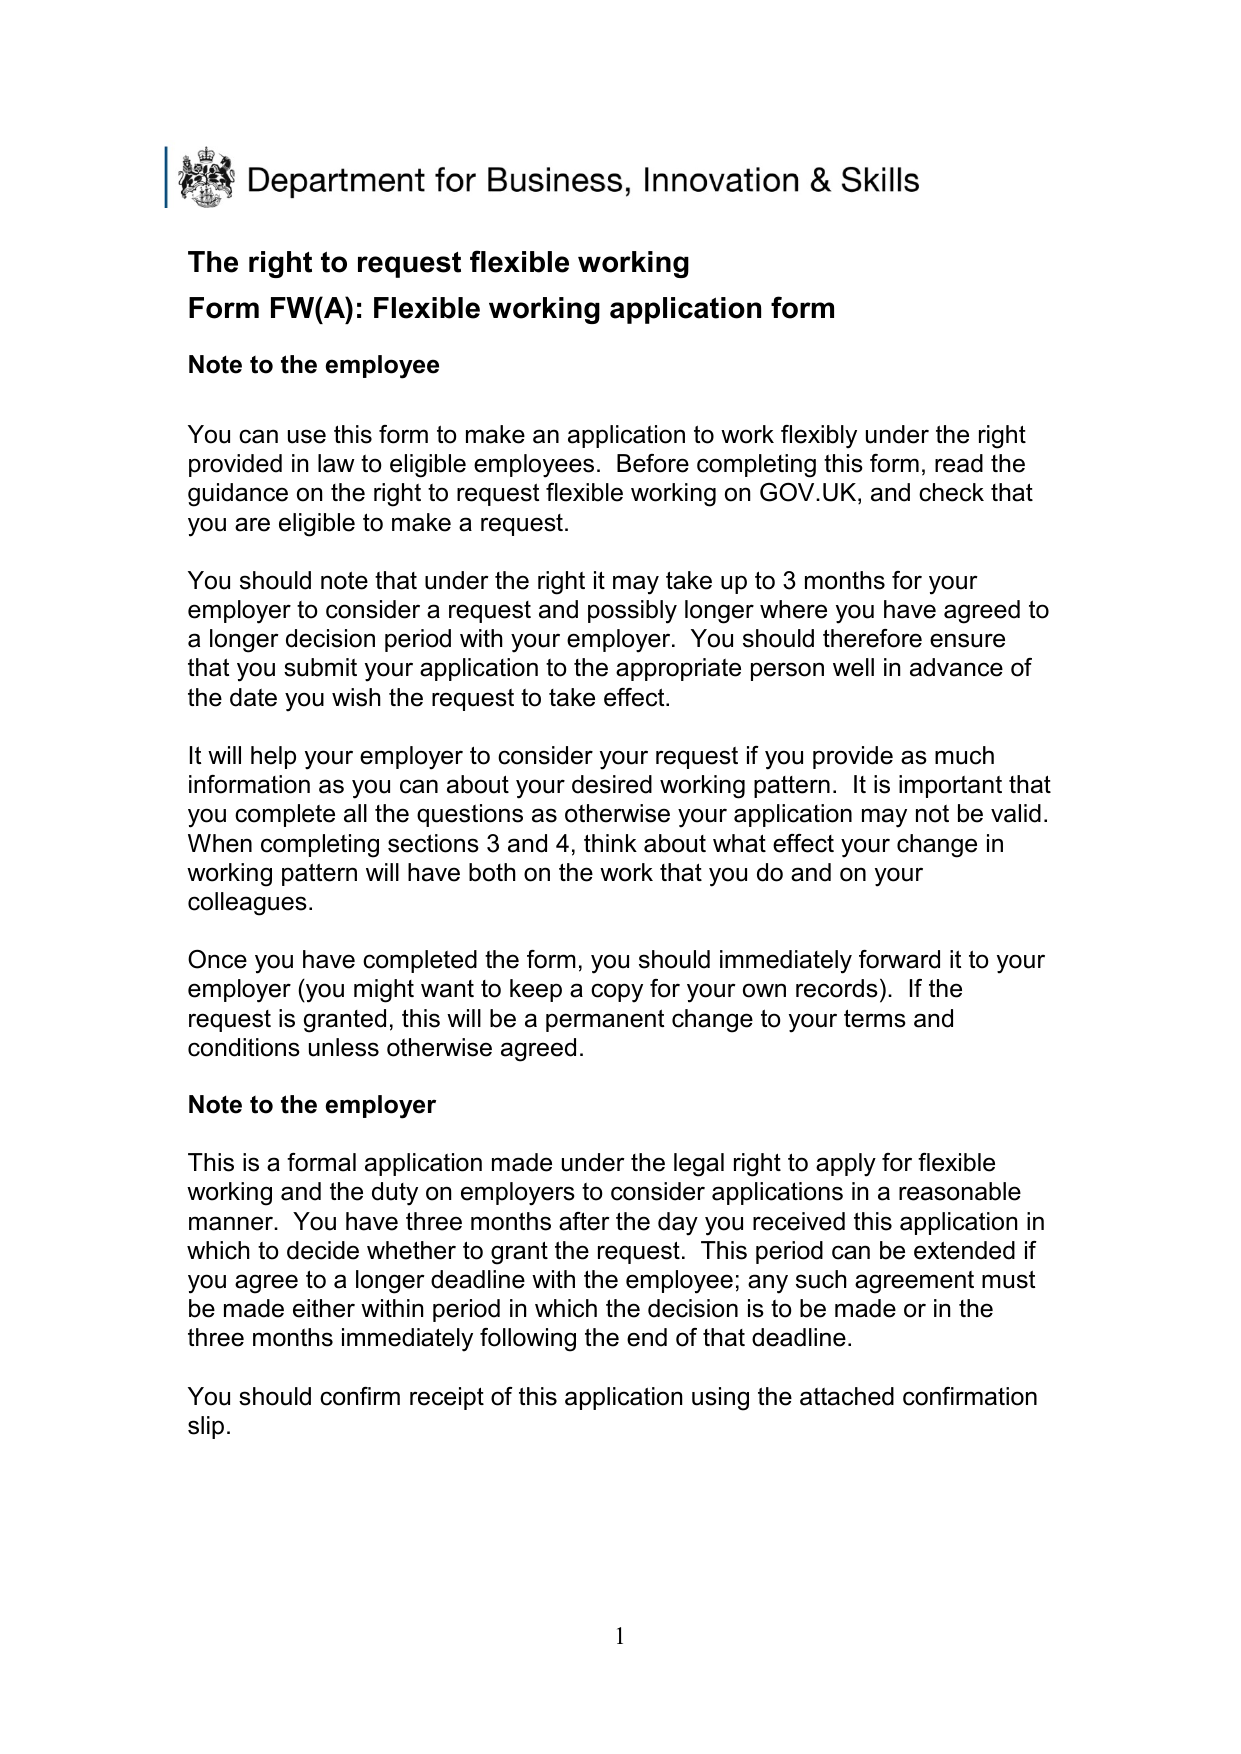 attachment the right to request flexible working application form